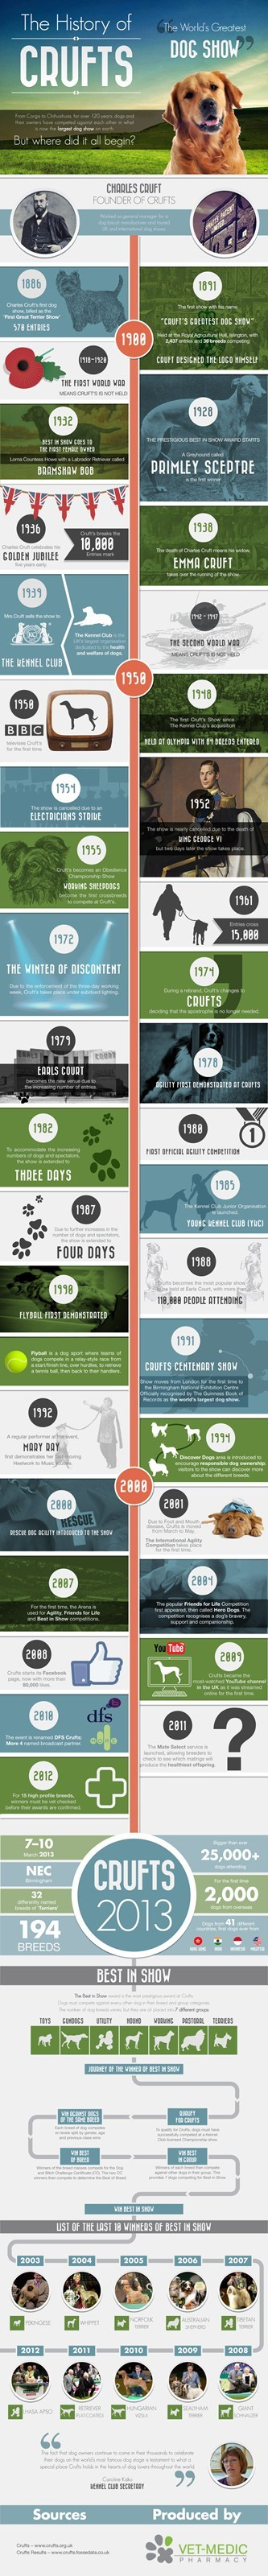 dog show,time line,history,Crufts